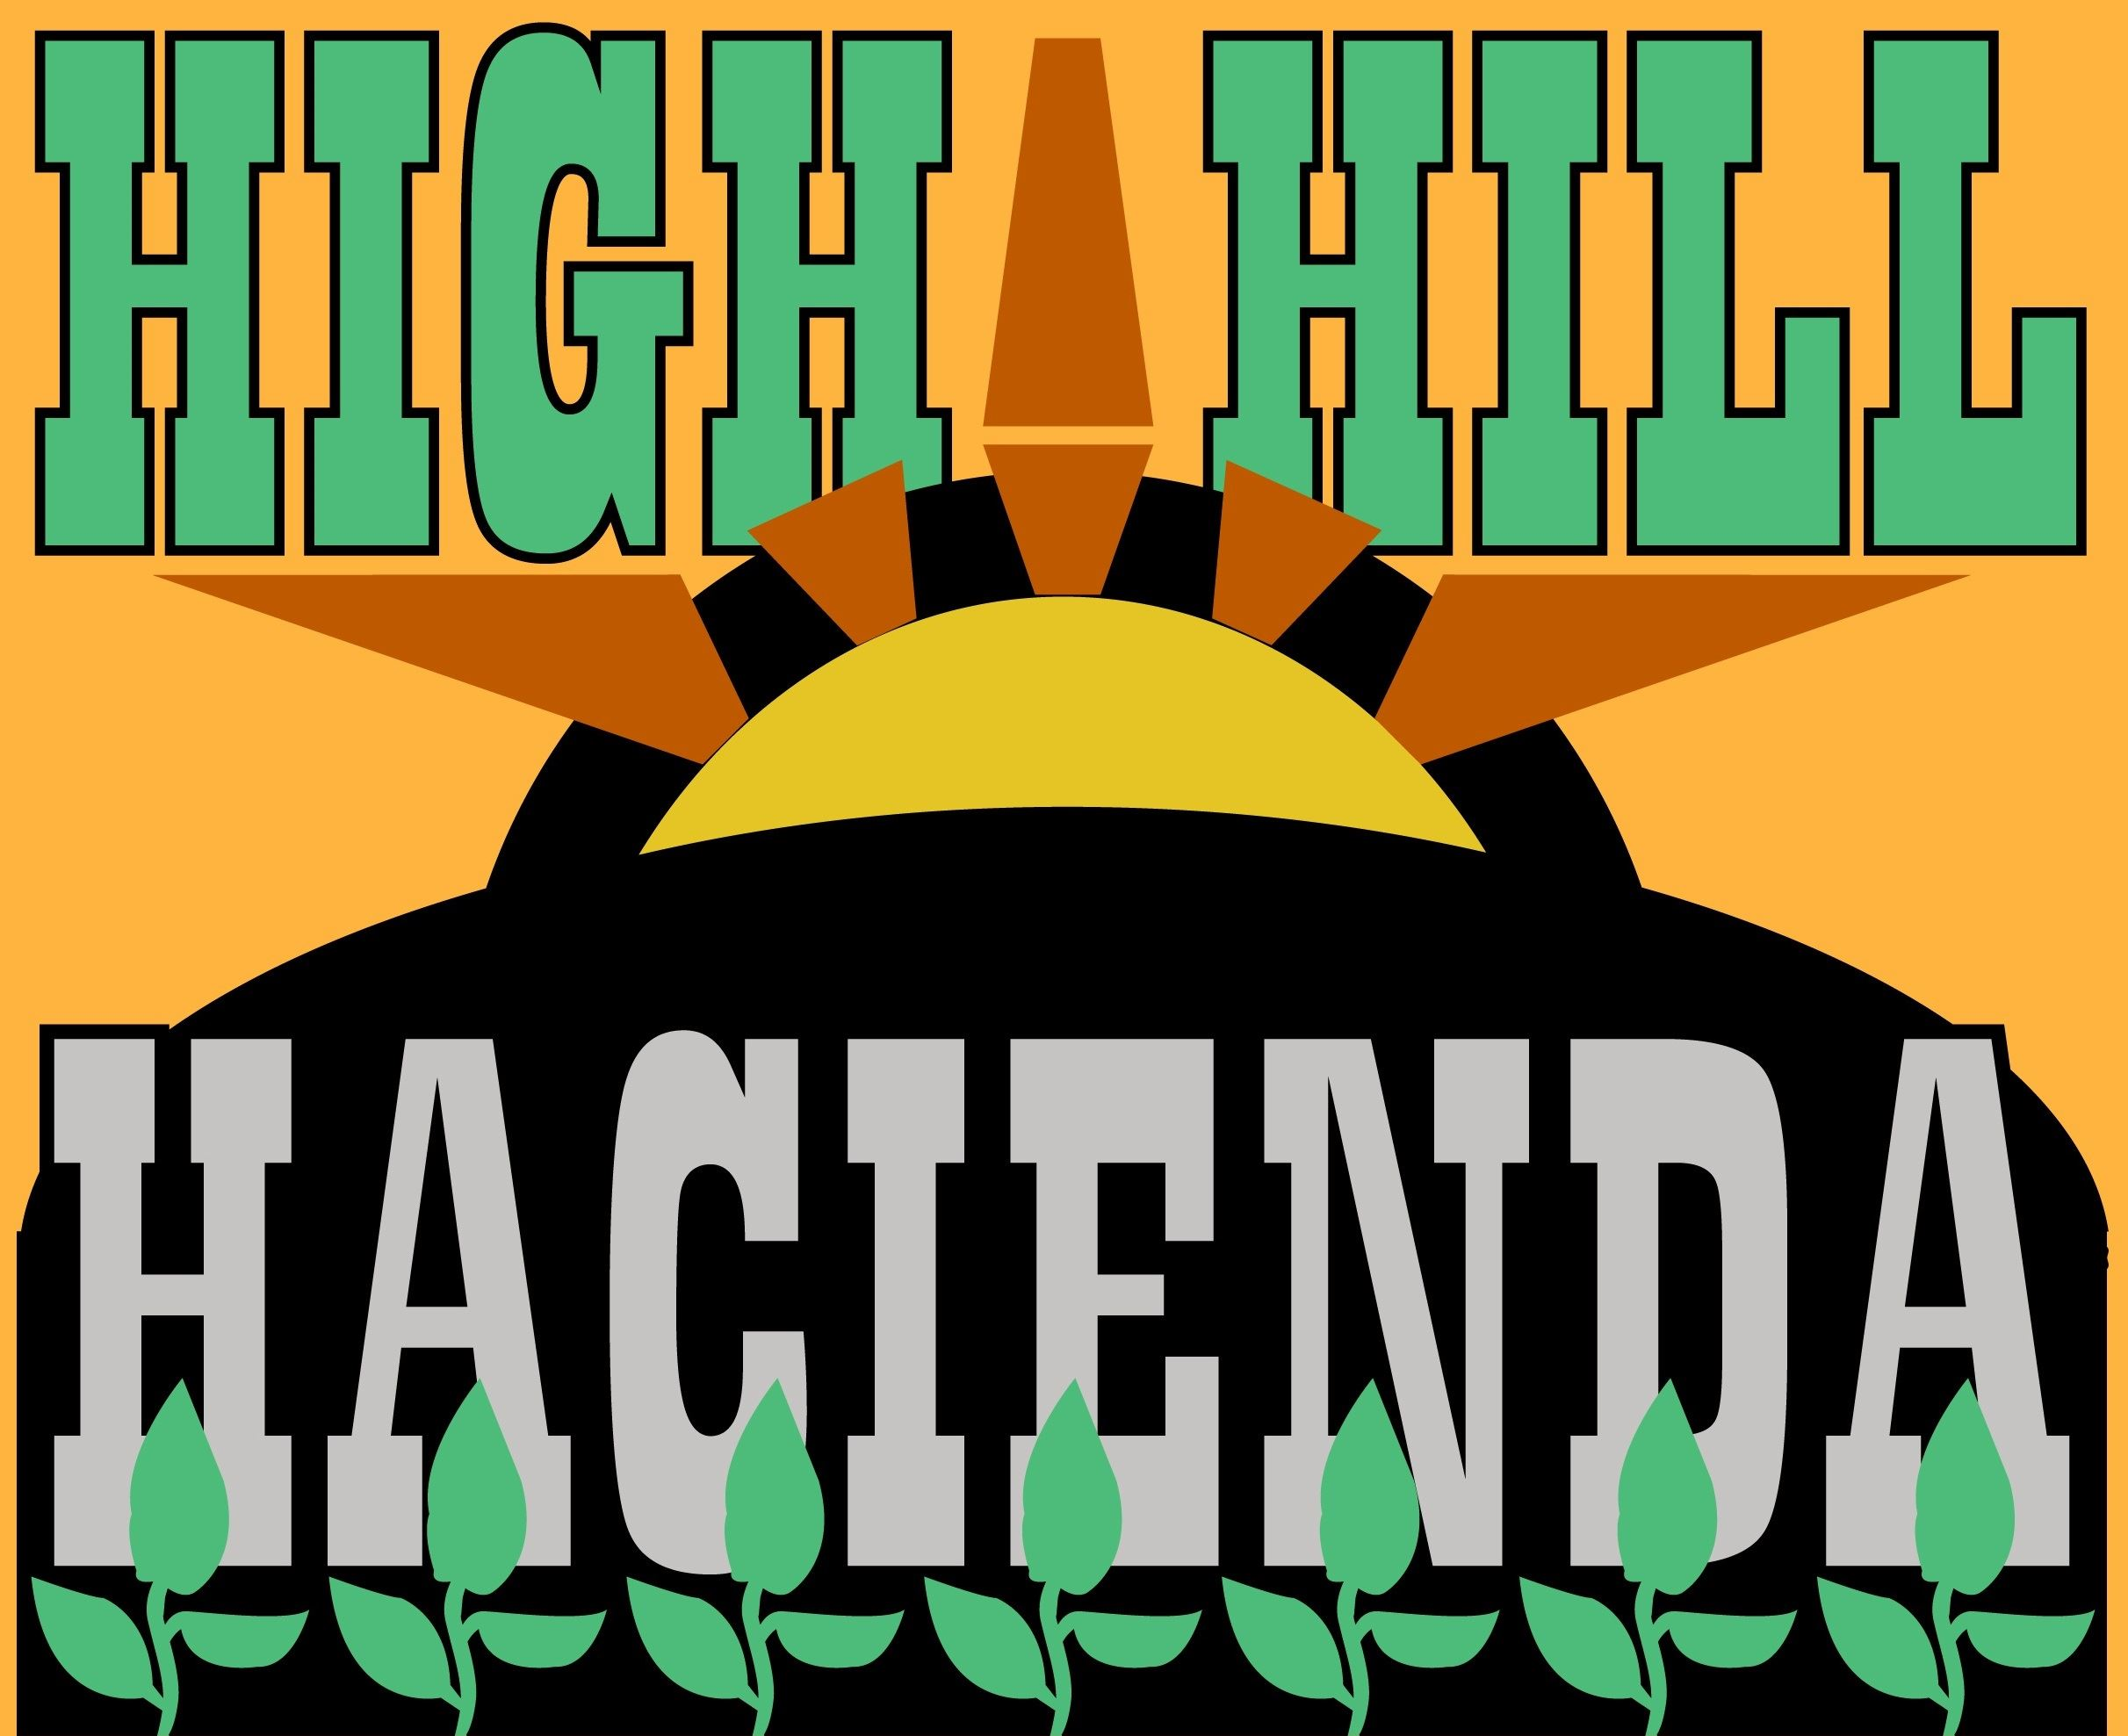 highhillhacienda